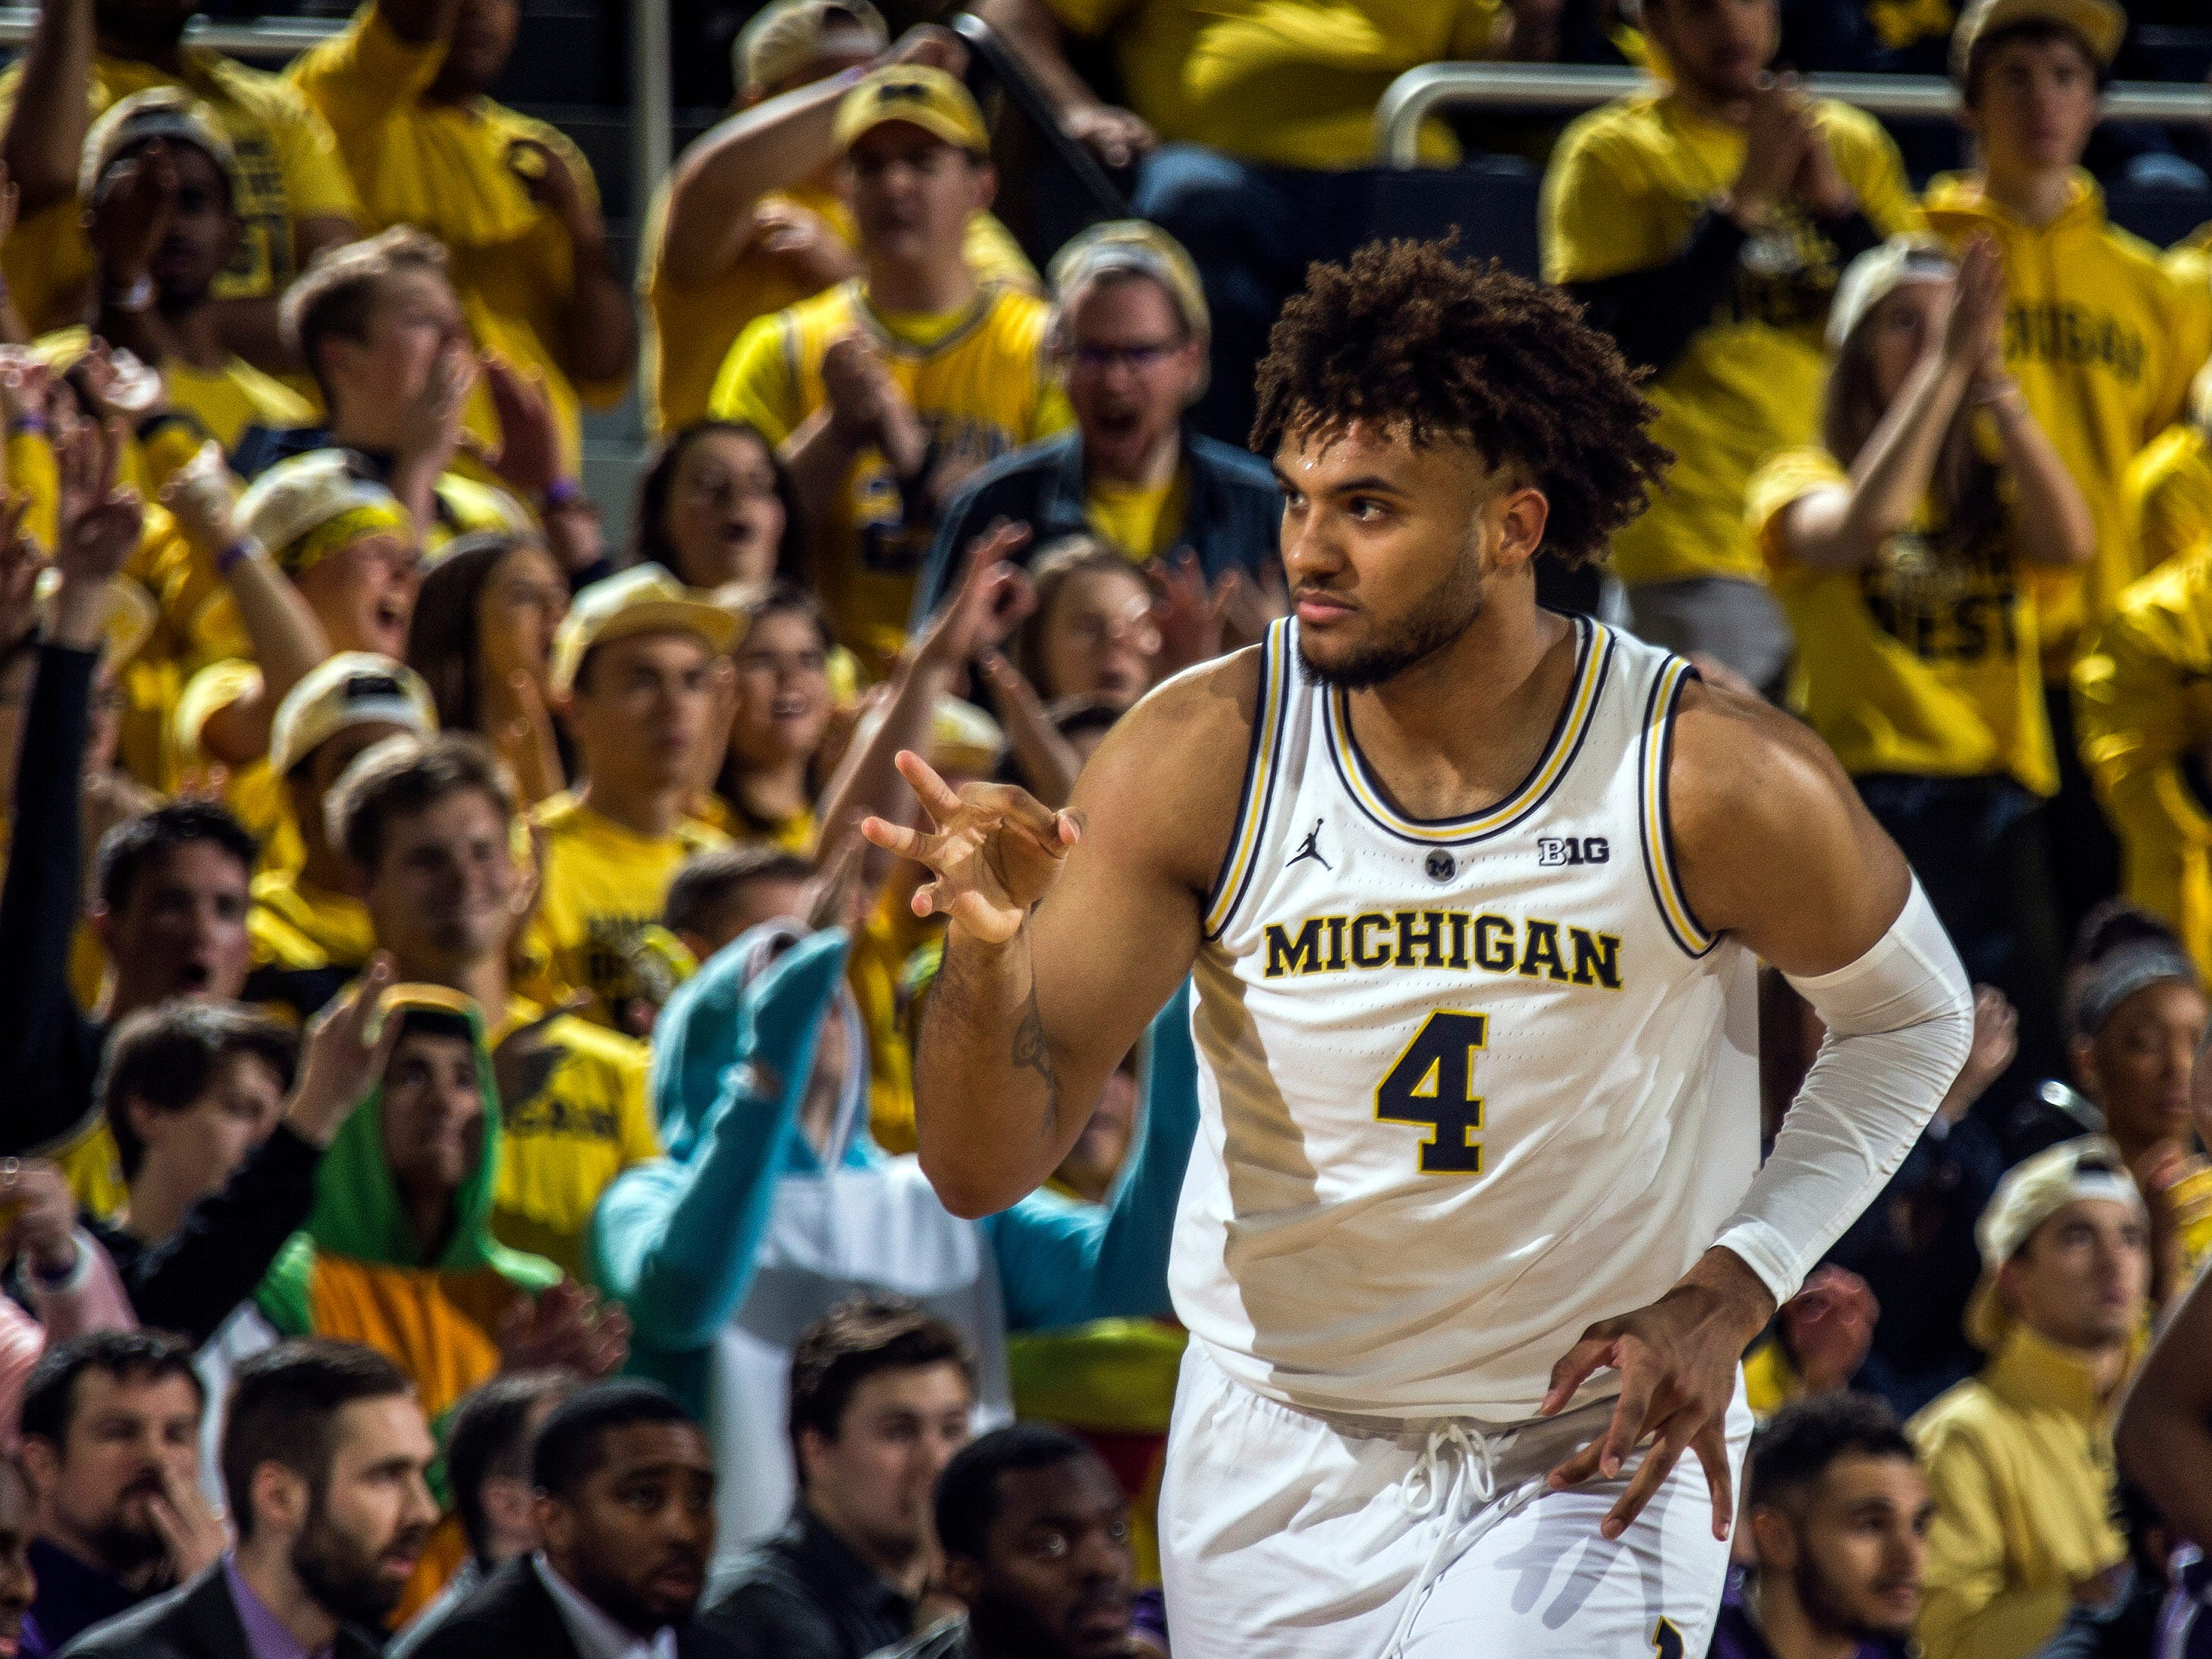 Michigan forward Isaiah Livers (4) celebrates making a three pointer in the first half.